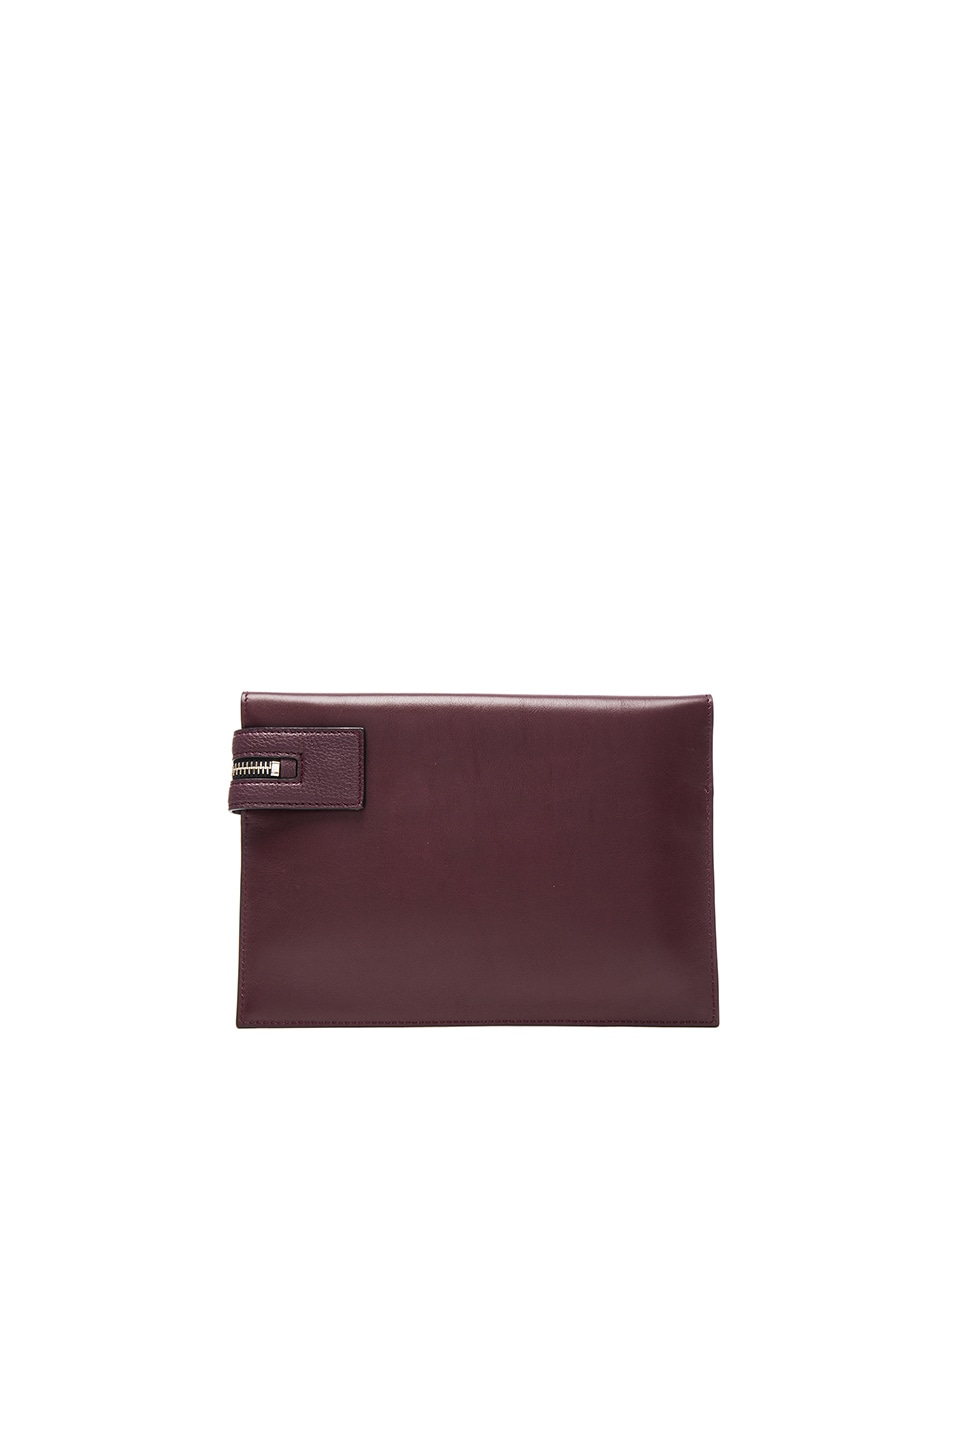 Victoria Beckham Grained Leather Small Zip Pouch in Purple 5DsqFlZWv